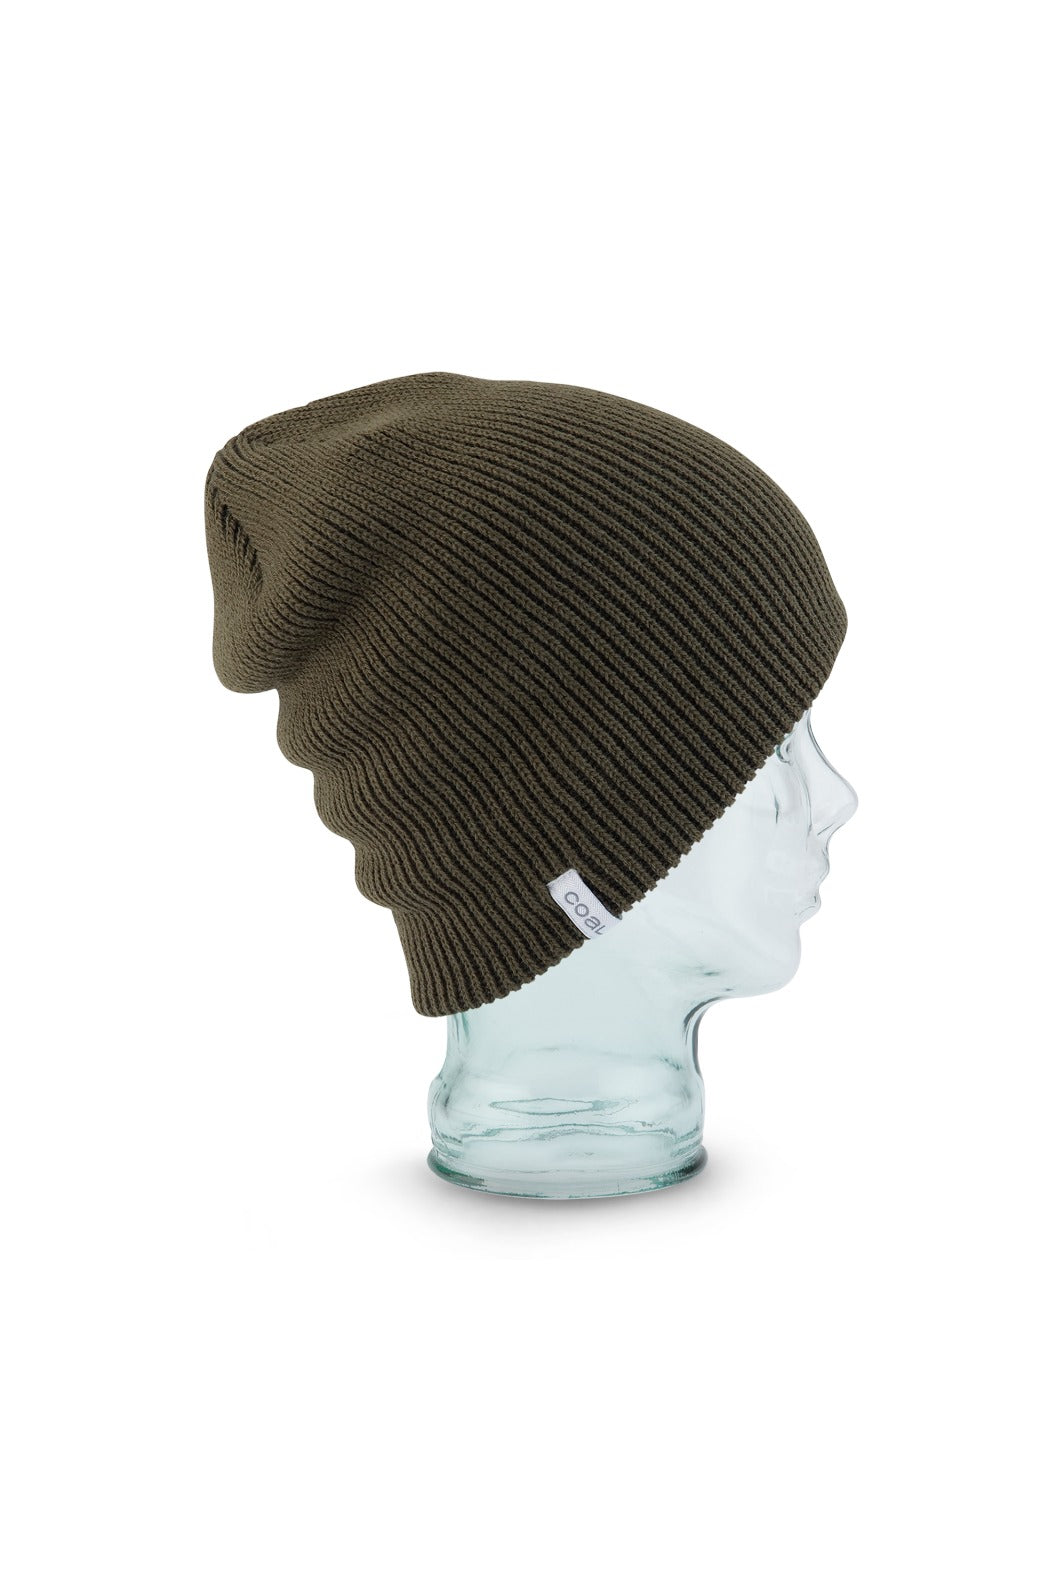 Coal Frena Solid Beanie in Olive – Queen of Hearts and Modern Love a9b8aeabdd7